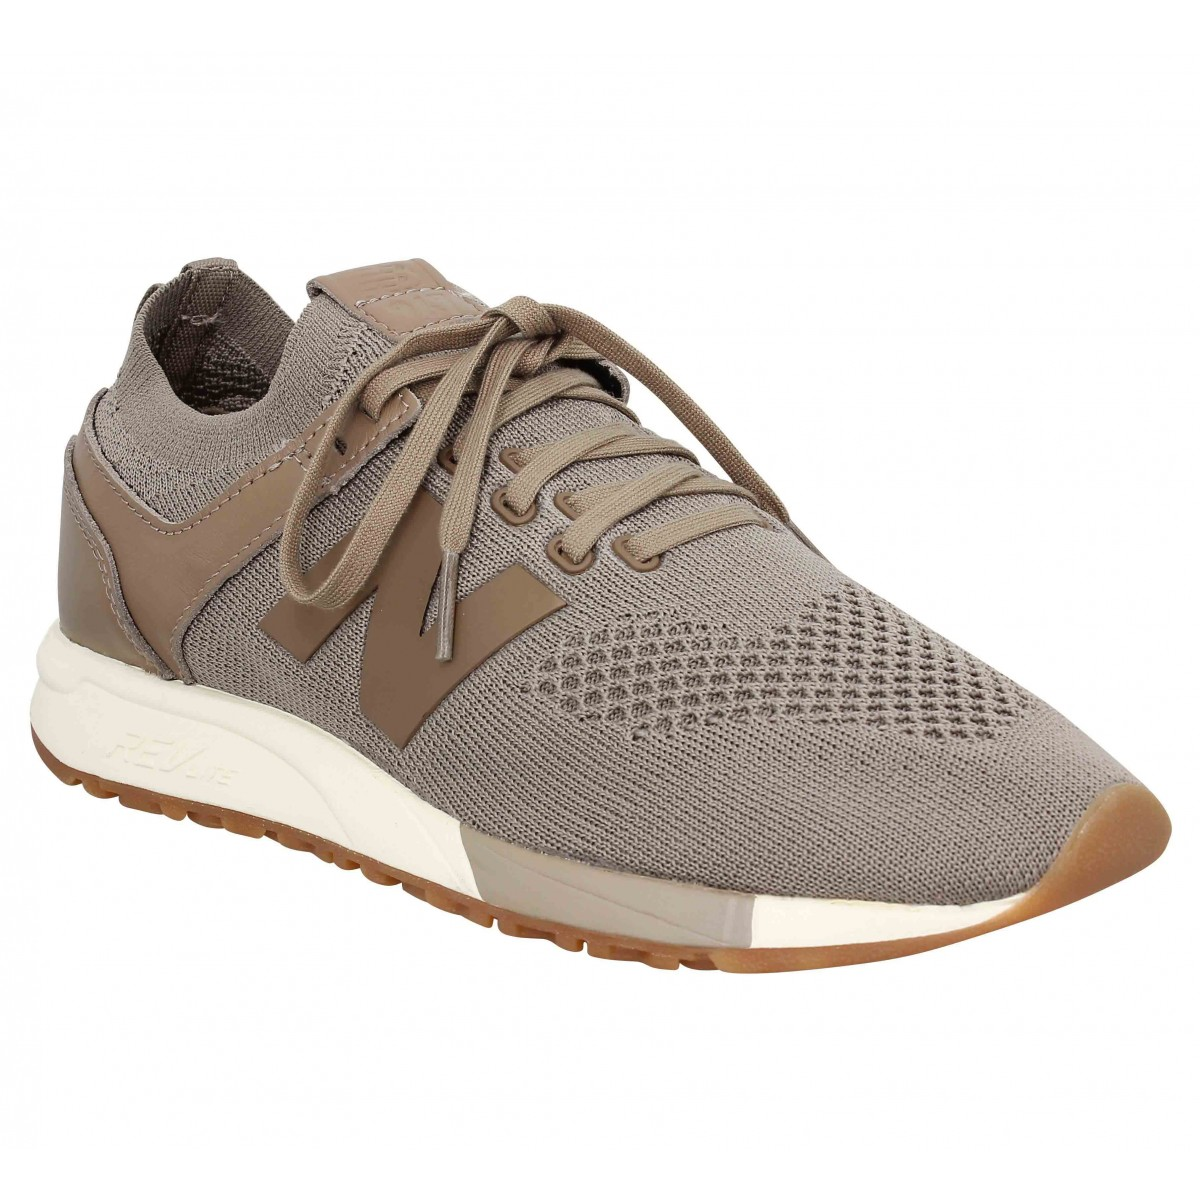 New Balance Marque 247 Knit...